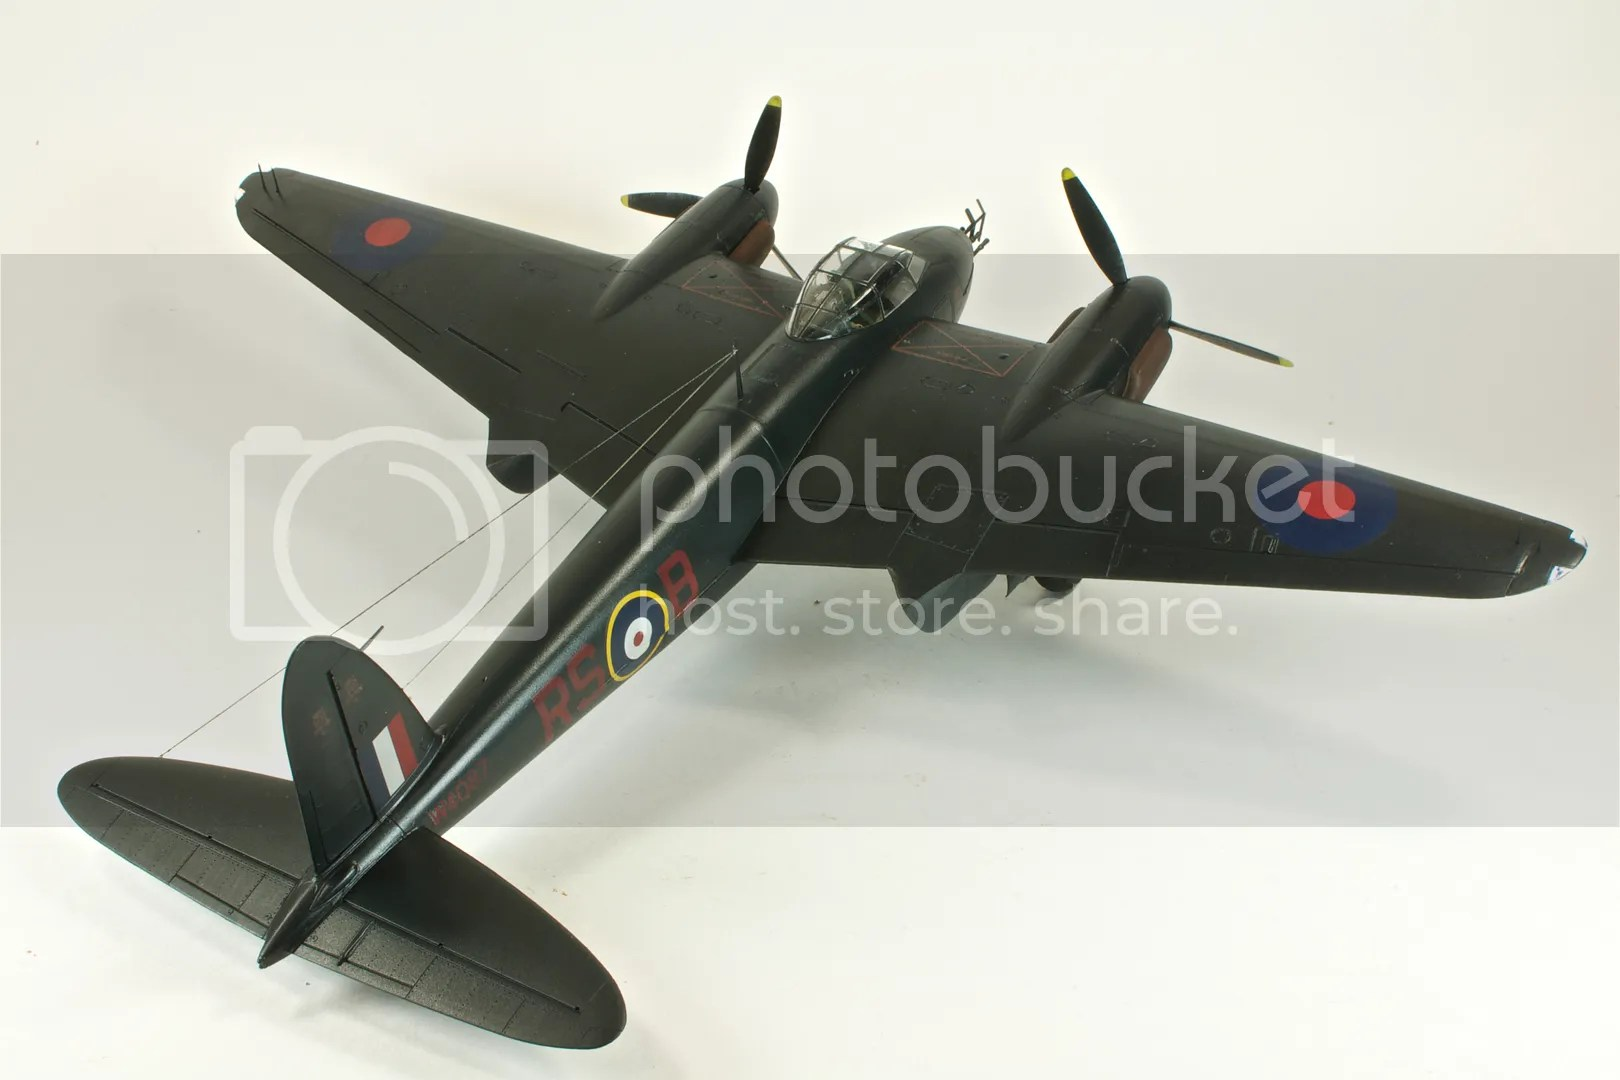 Mosquito NFII,1/48,2011,March,Tamiya,Nikon D300s,scale models